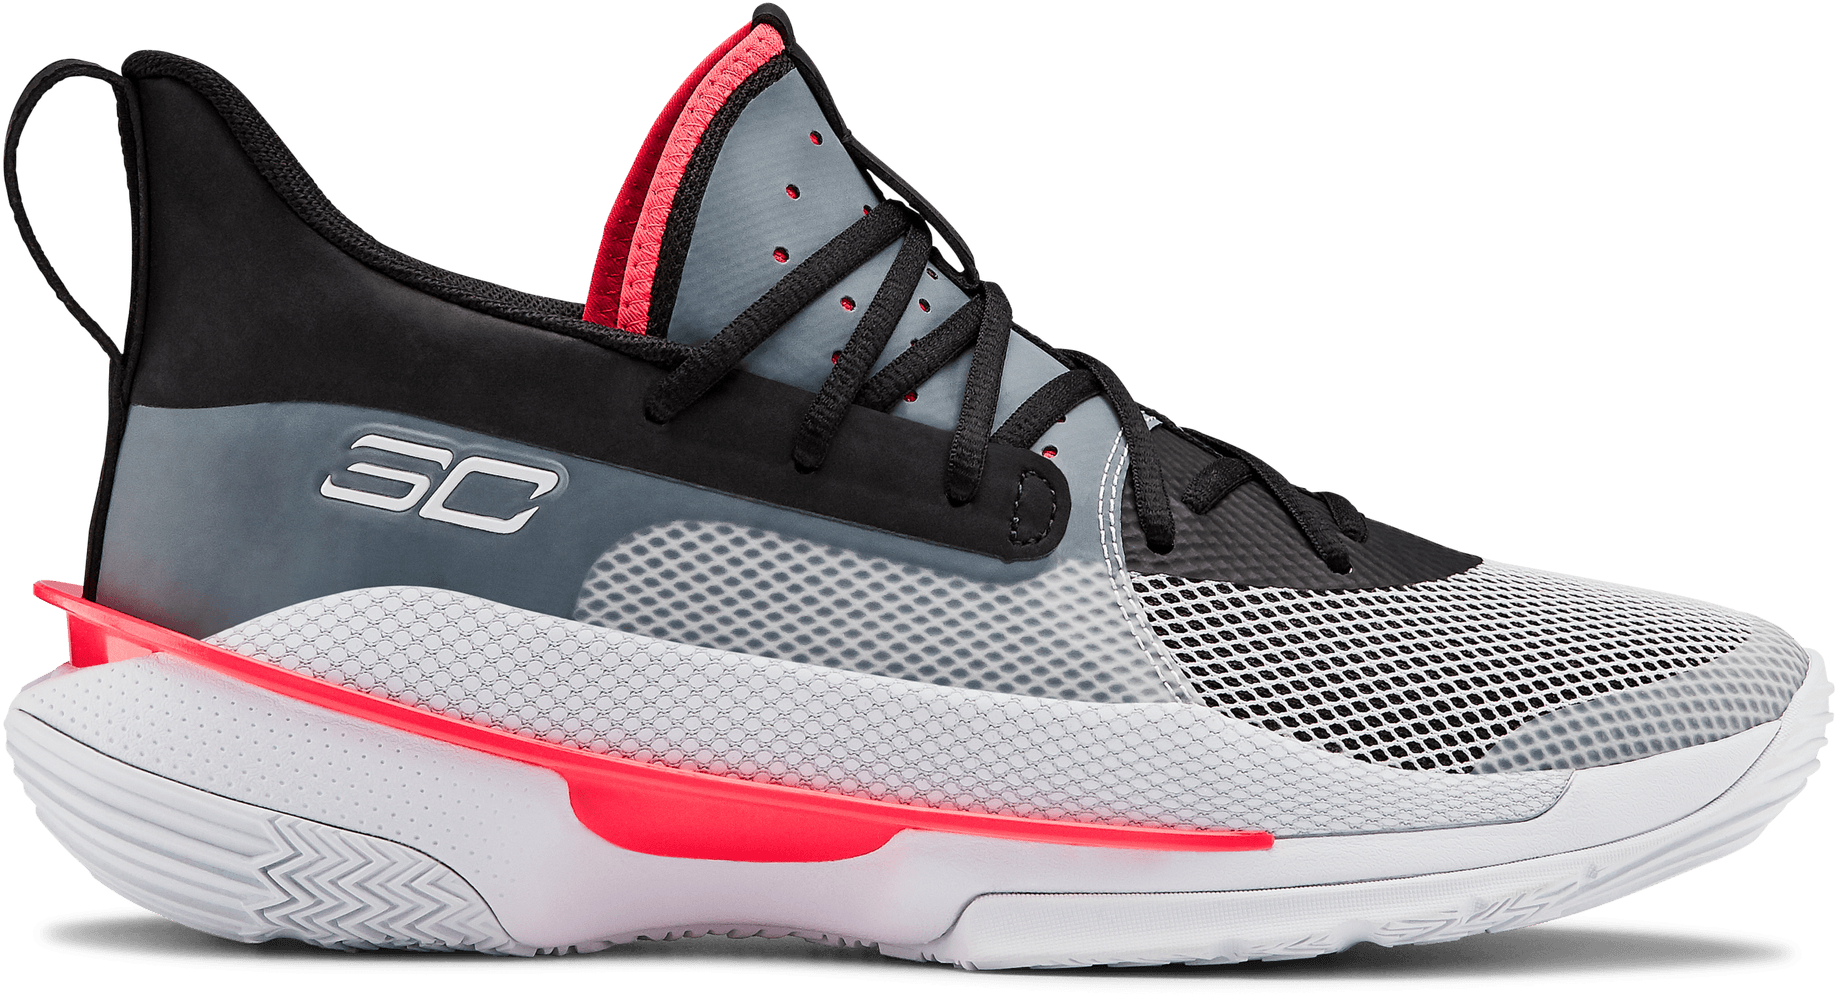 Under Armour Curry 7 Performance Review